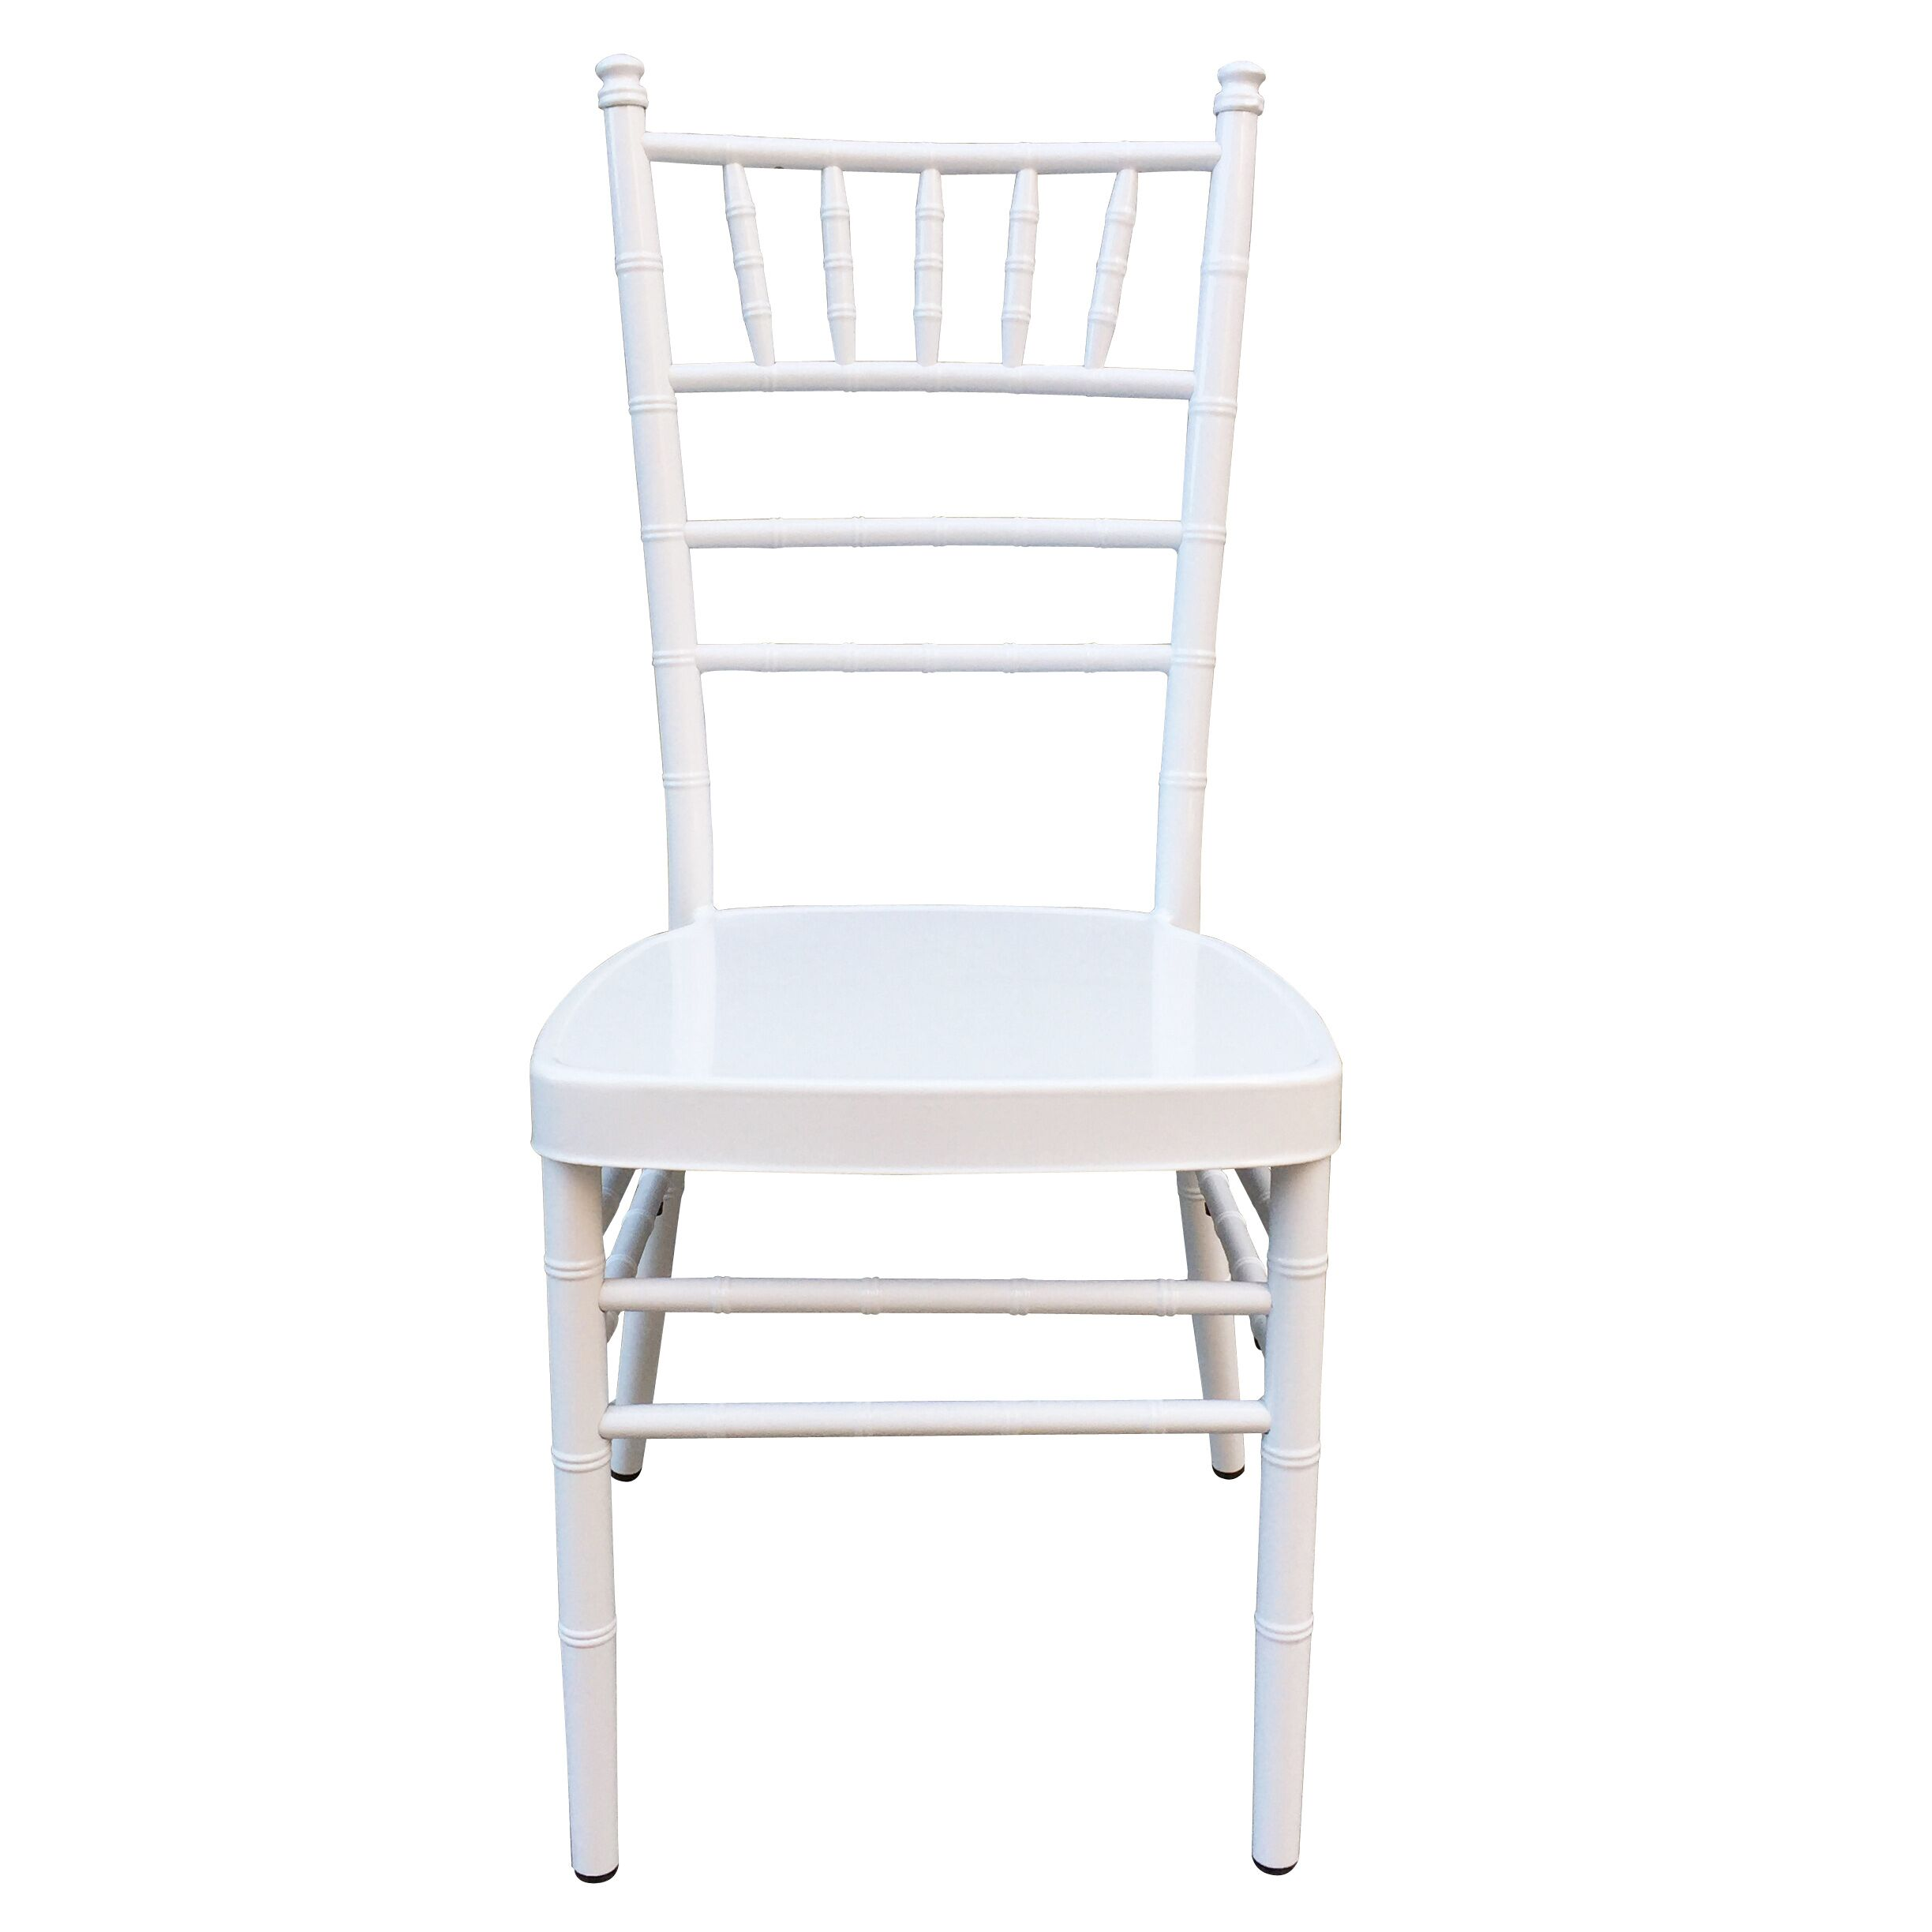 Hot sale Factory Cheap Church Chair For Rental Business -